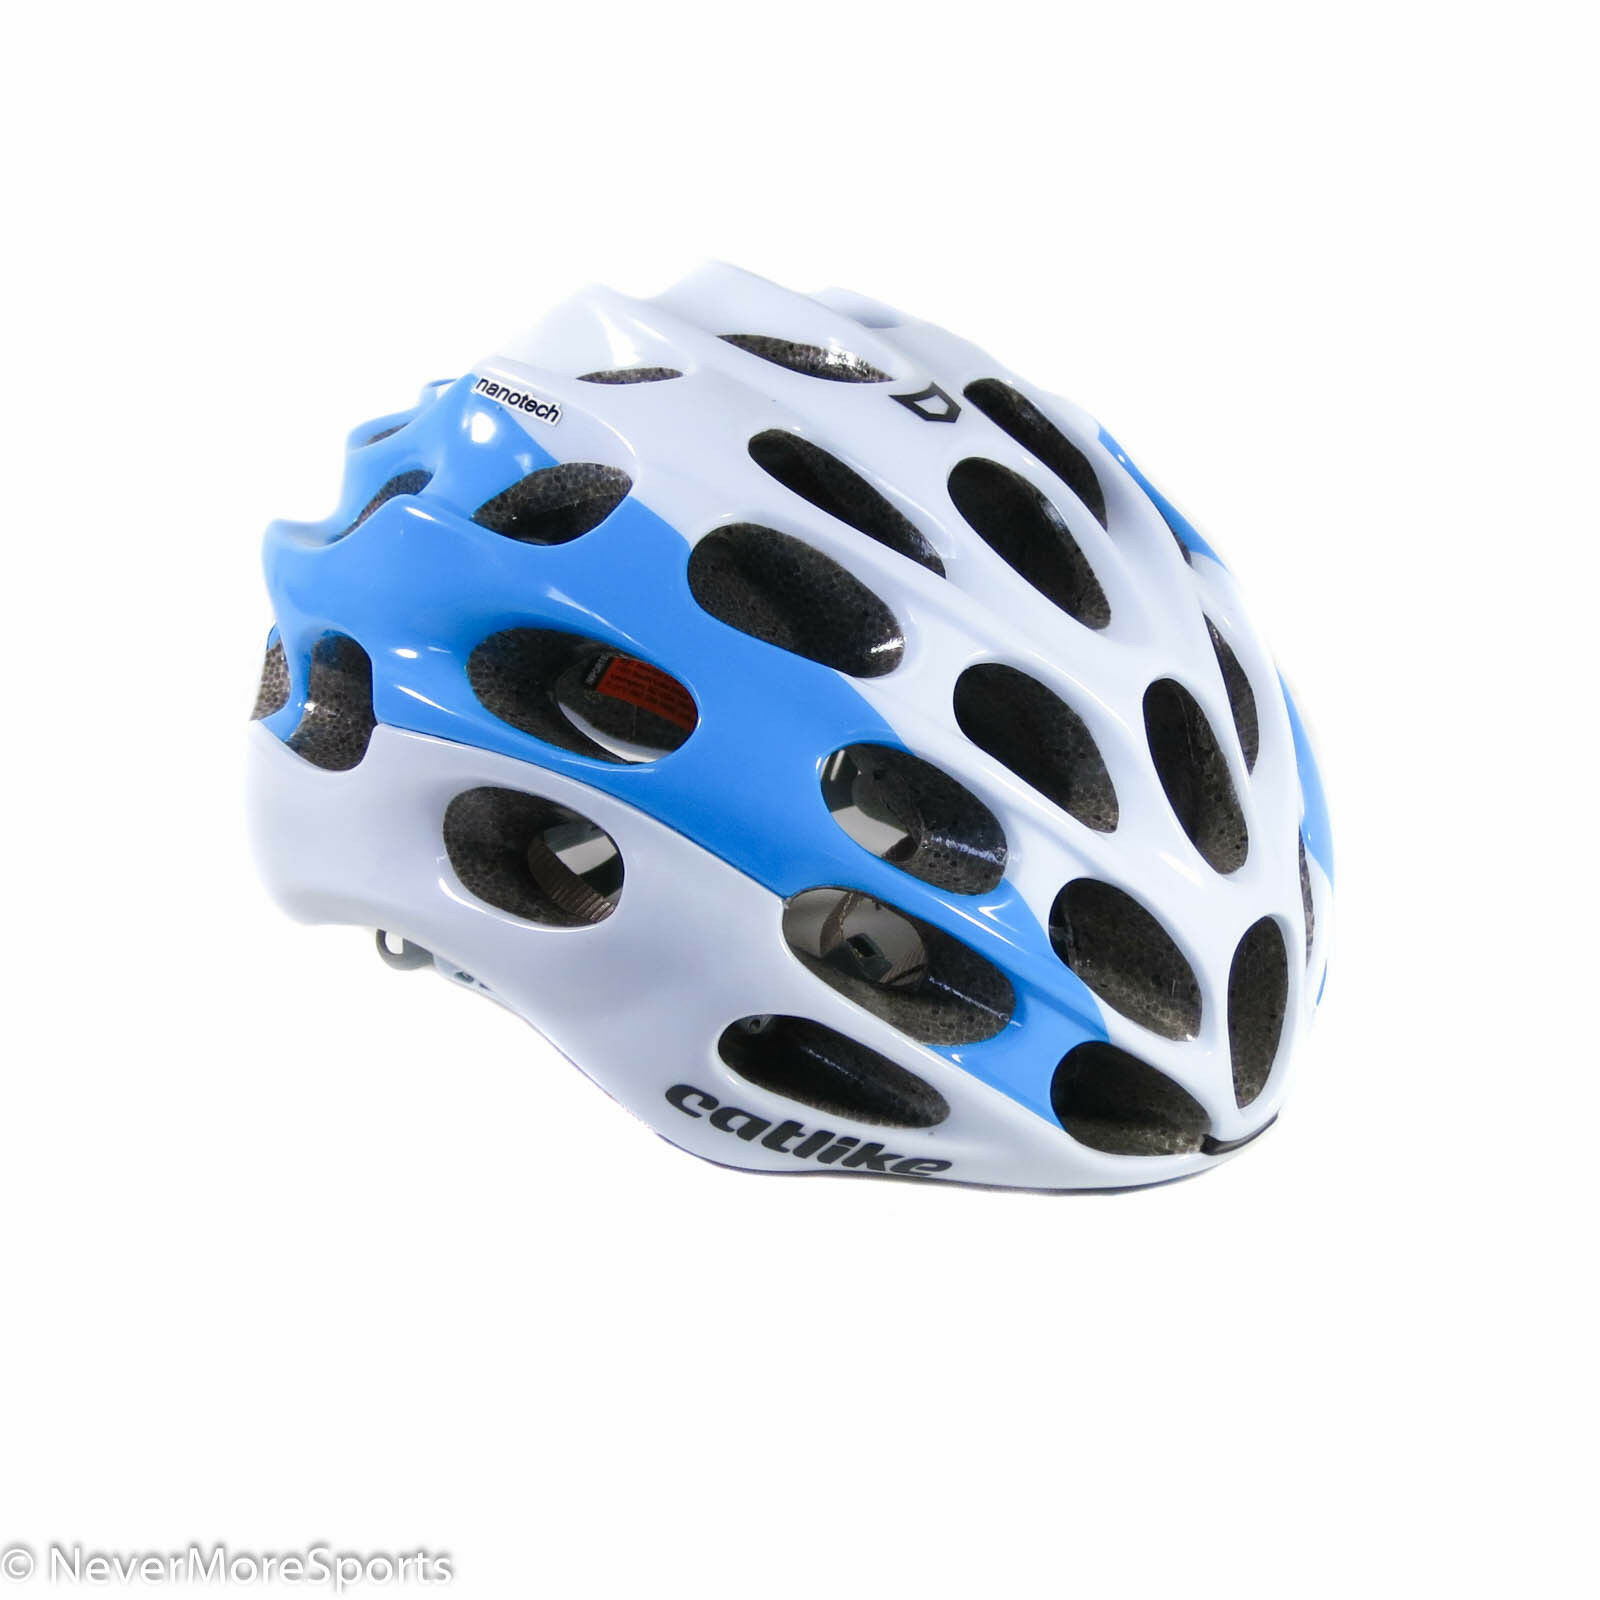 Catlike Mixino Road Bike Helmet Small 52-54cm White bluee 2150034SMSV